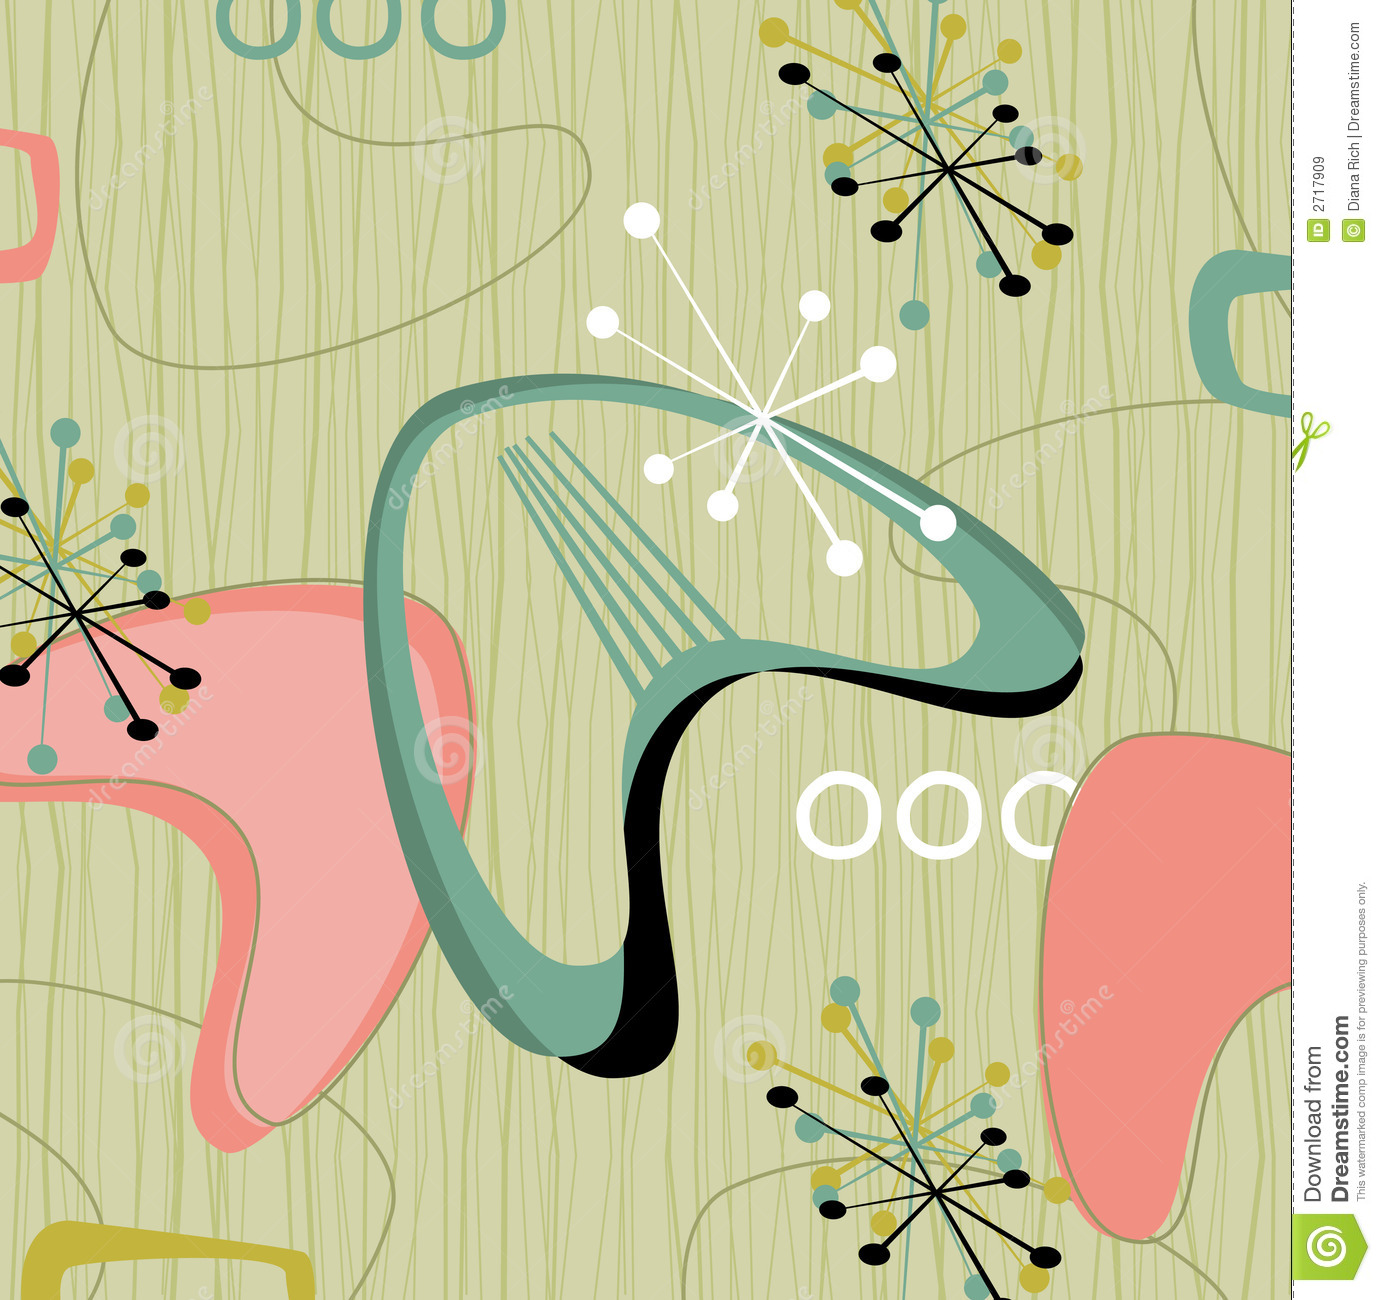 Retro barkcloth fabric-inspired design with stars and boomerangs. Each ...